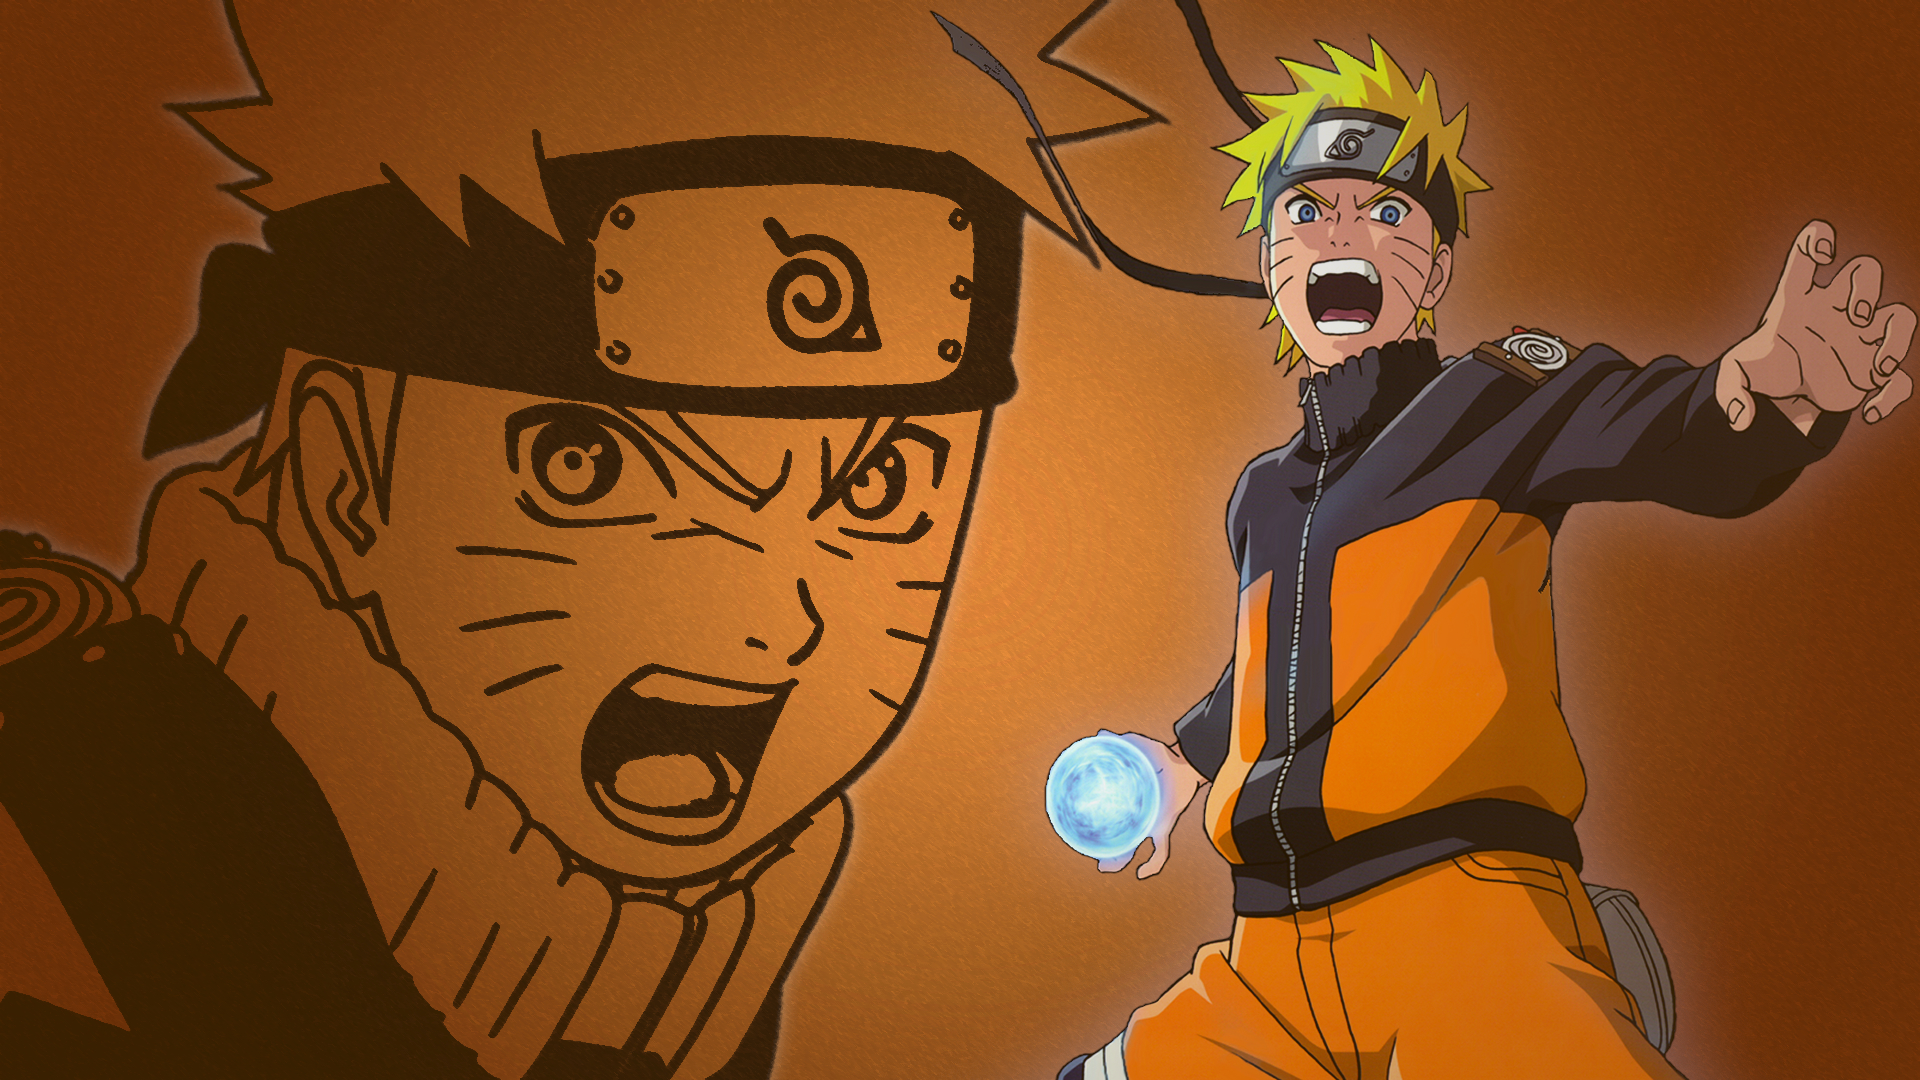 Naruto Uzumaki Rasengan Wallpaper, HD Anime 4K Wallpapers ...